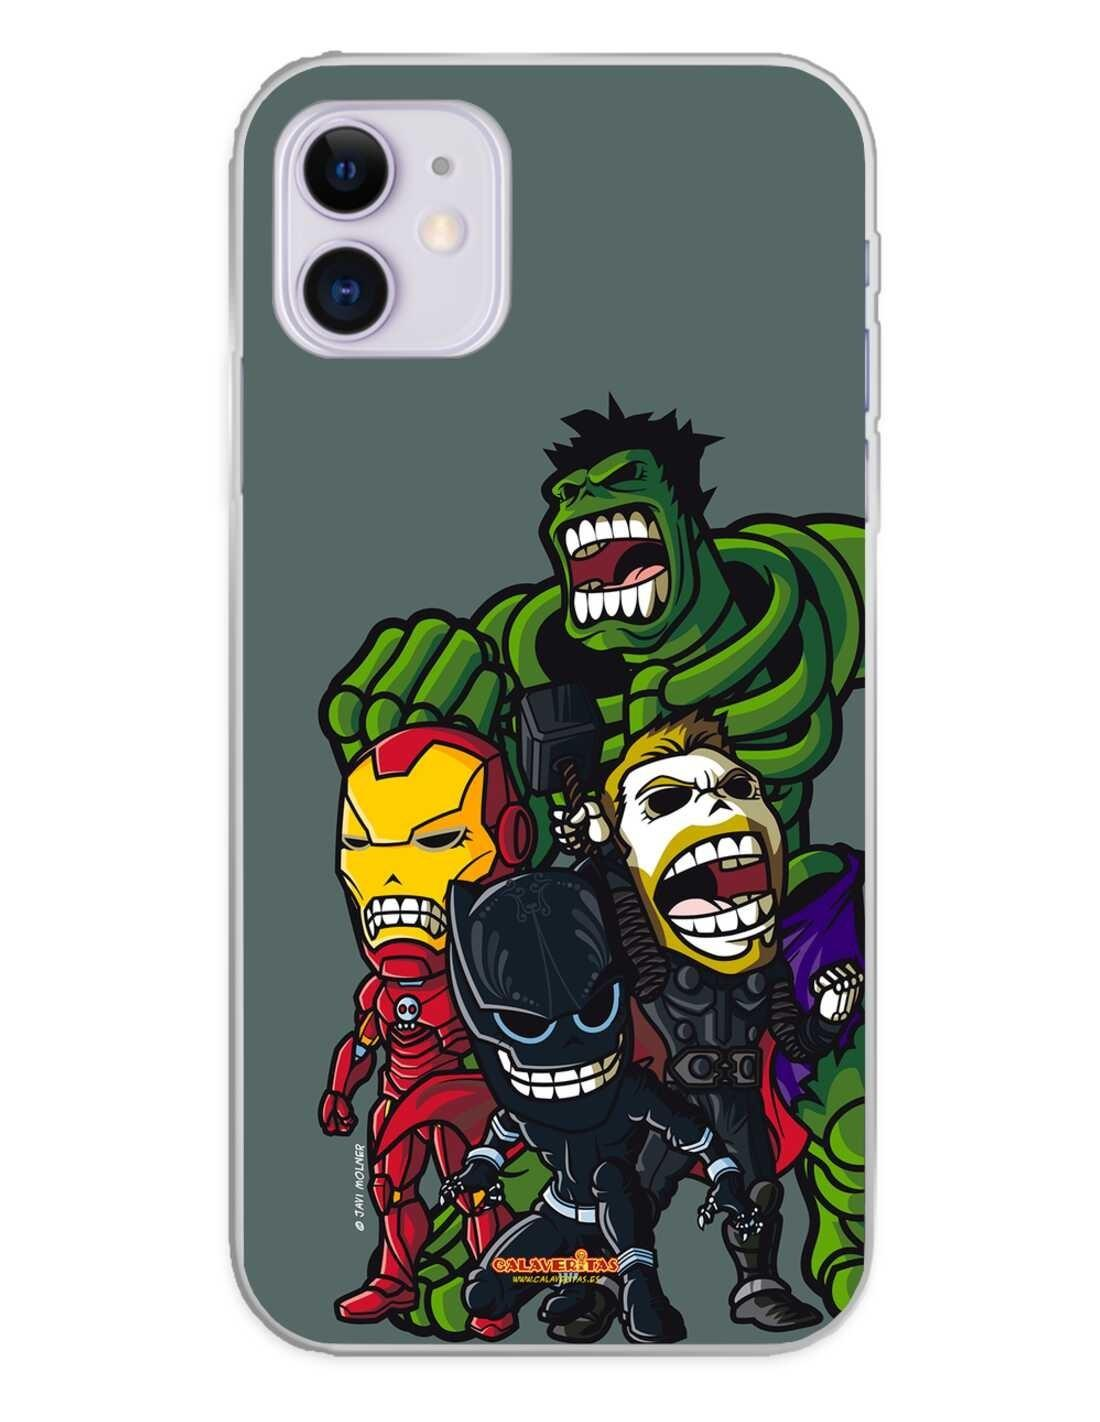 Apple iPhone 11 Funda Silicona Calaveritas The Fighters 2